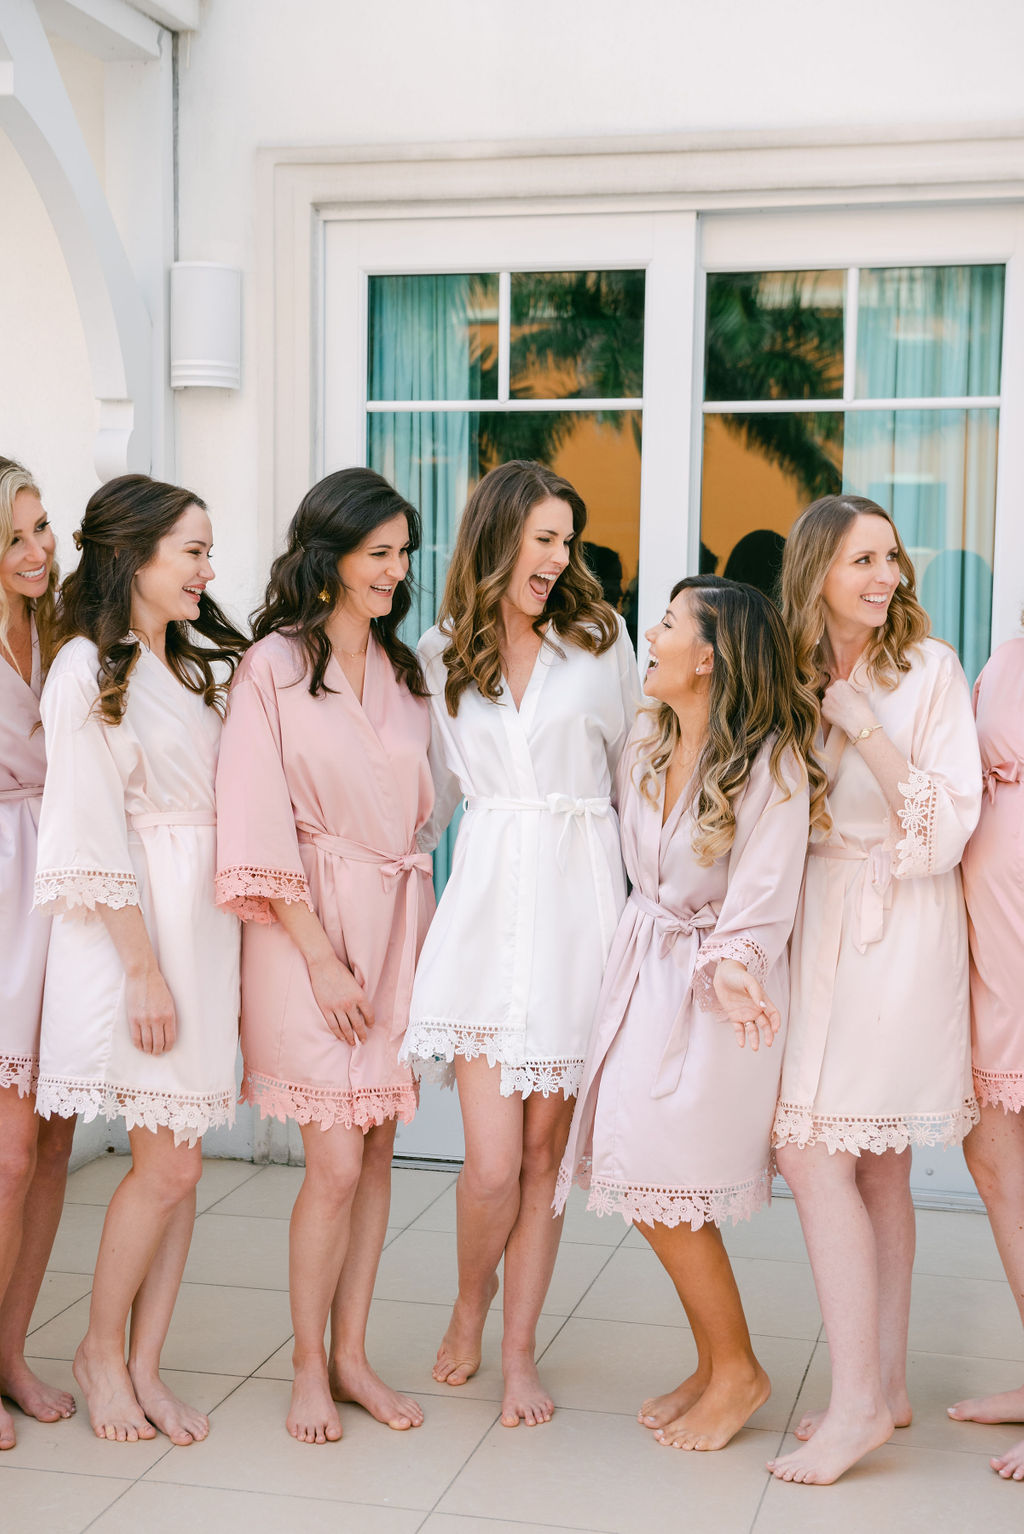 bride and bridesmaids in pastel pink and white dressing gowns